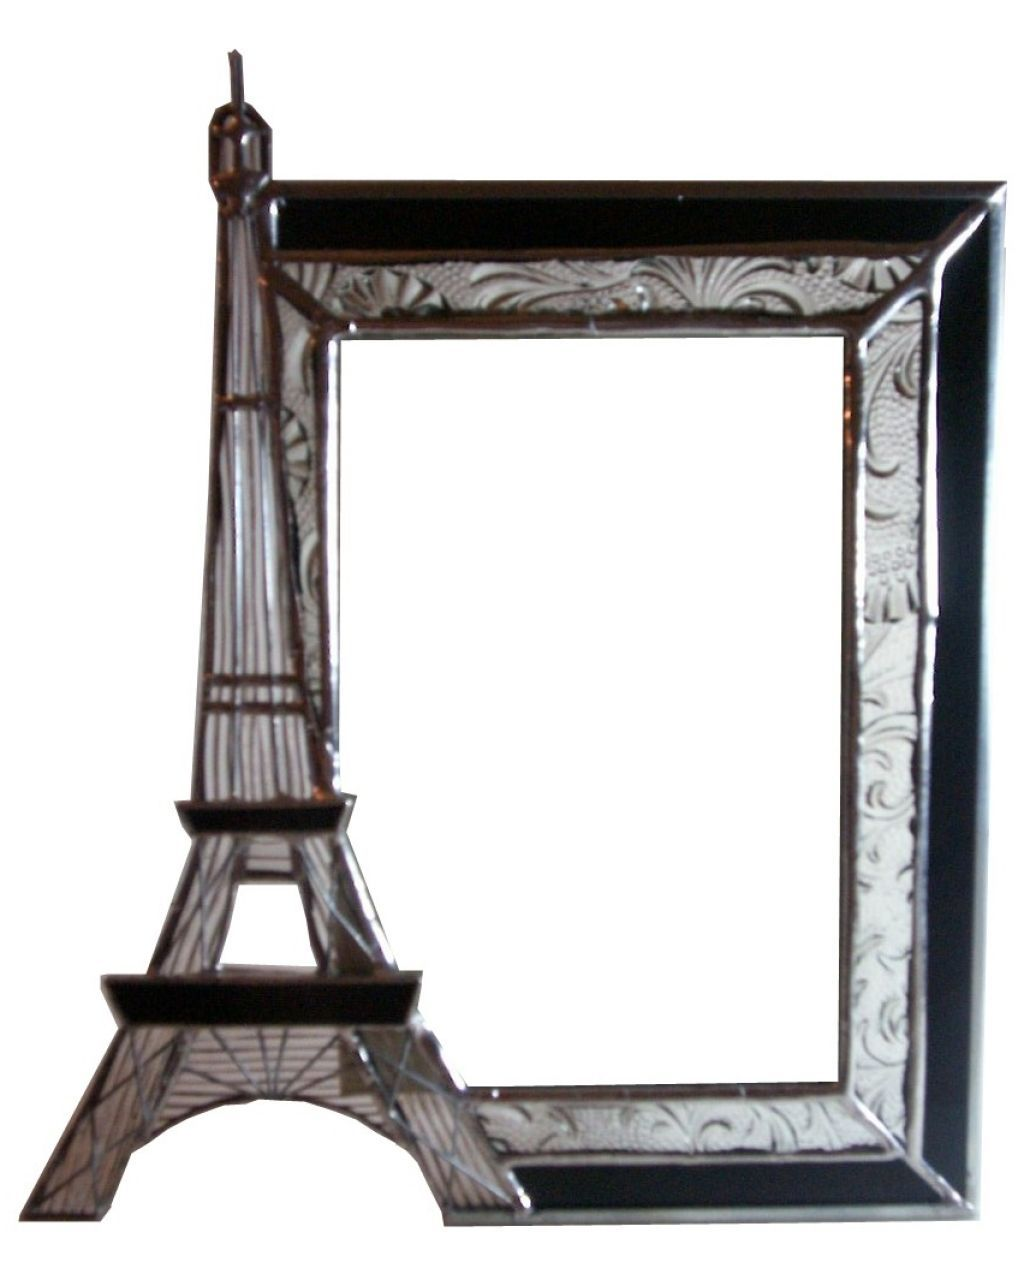 Eiffel tower picture frame unique vintage styled design for Cool picture frame designs